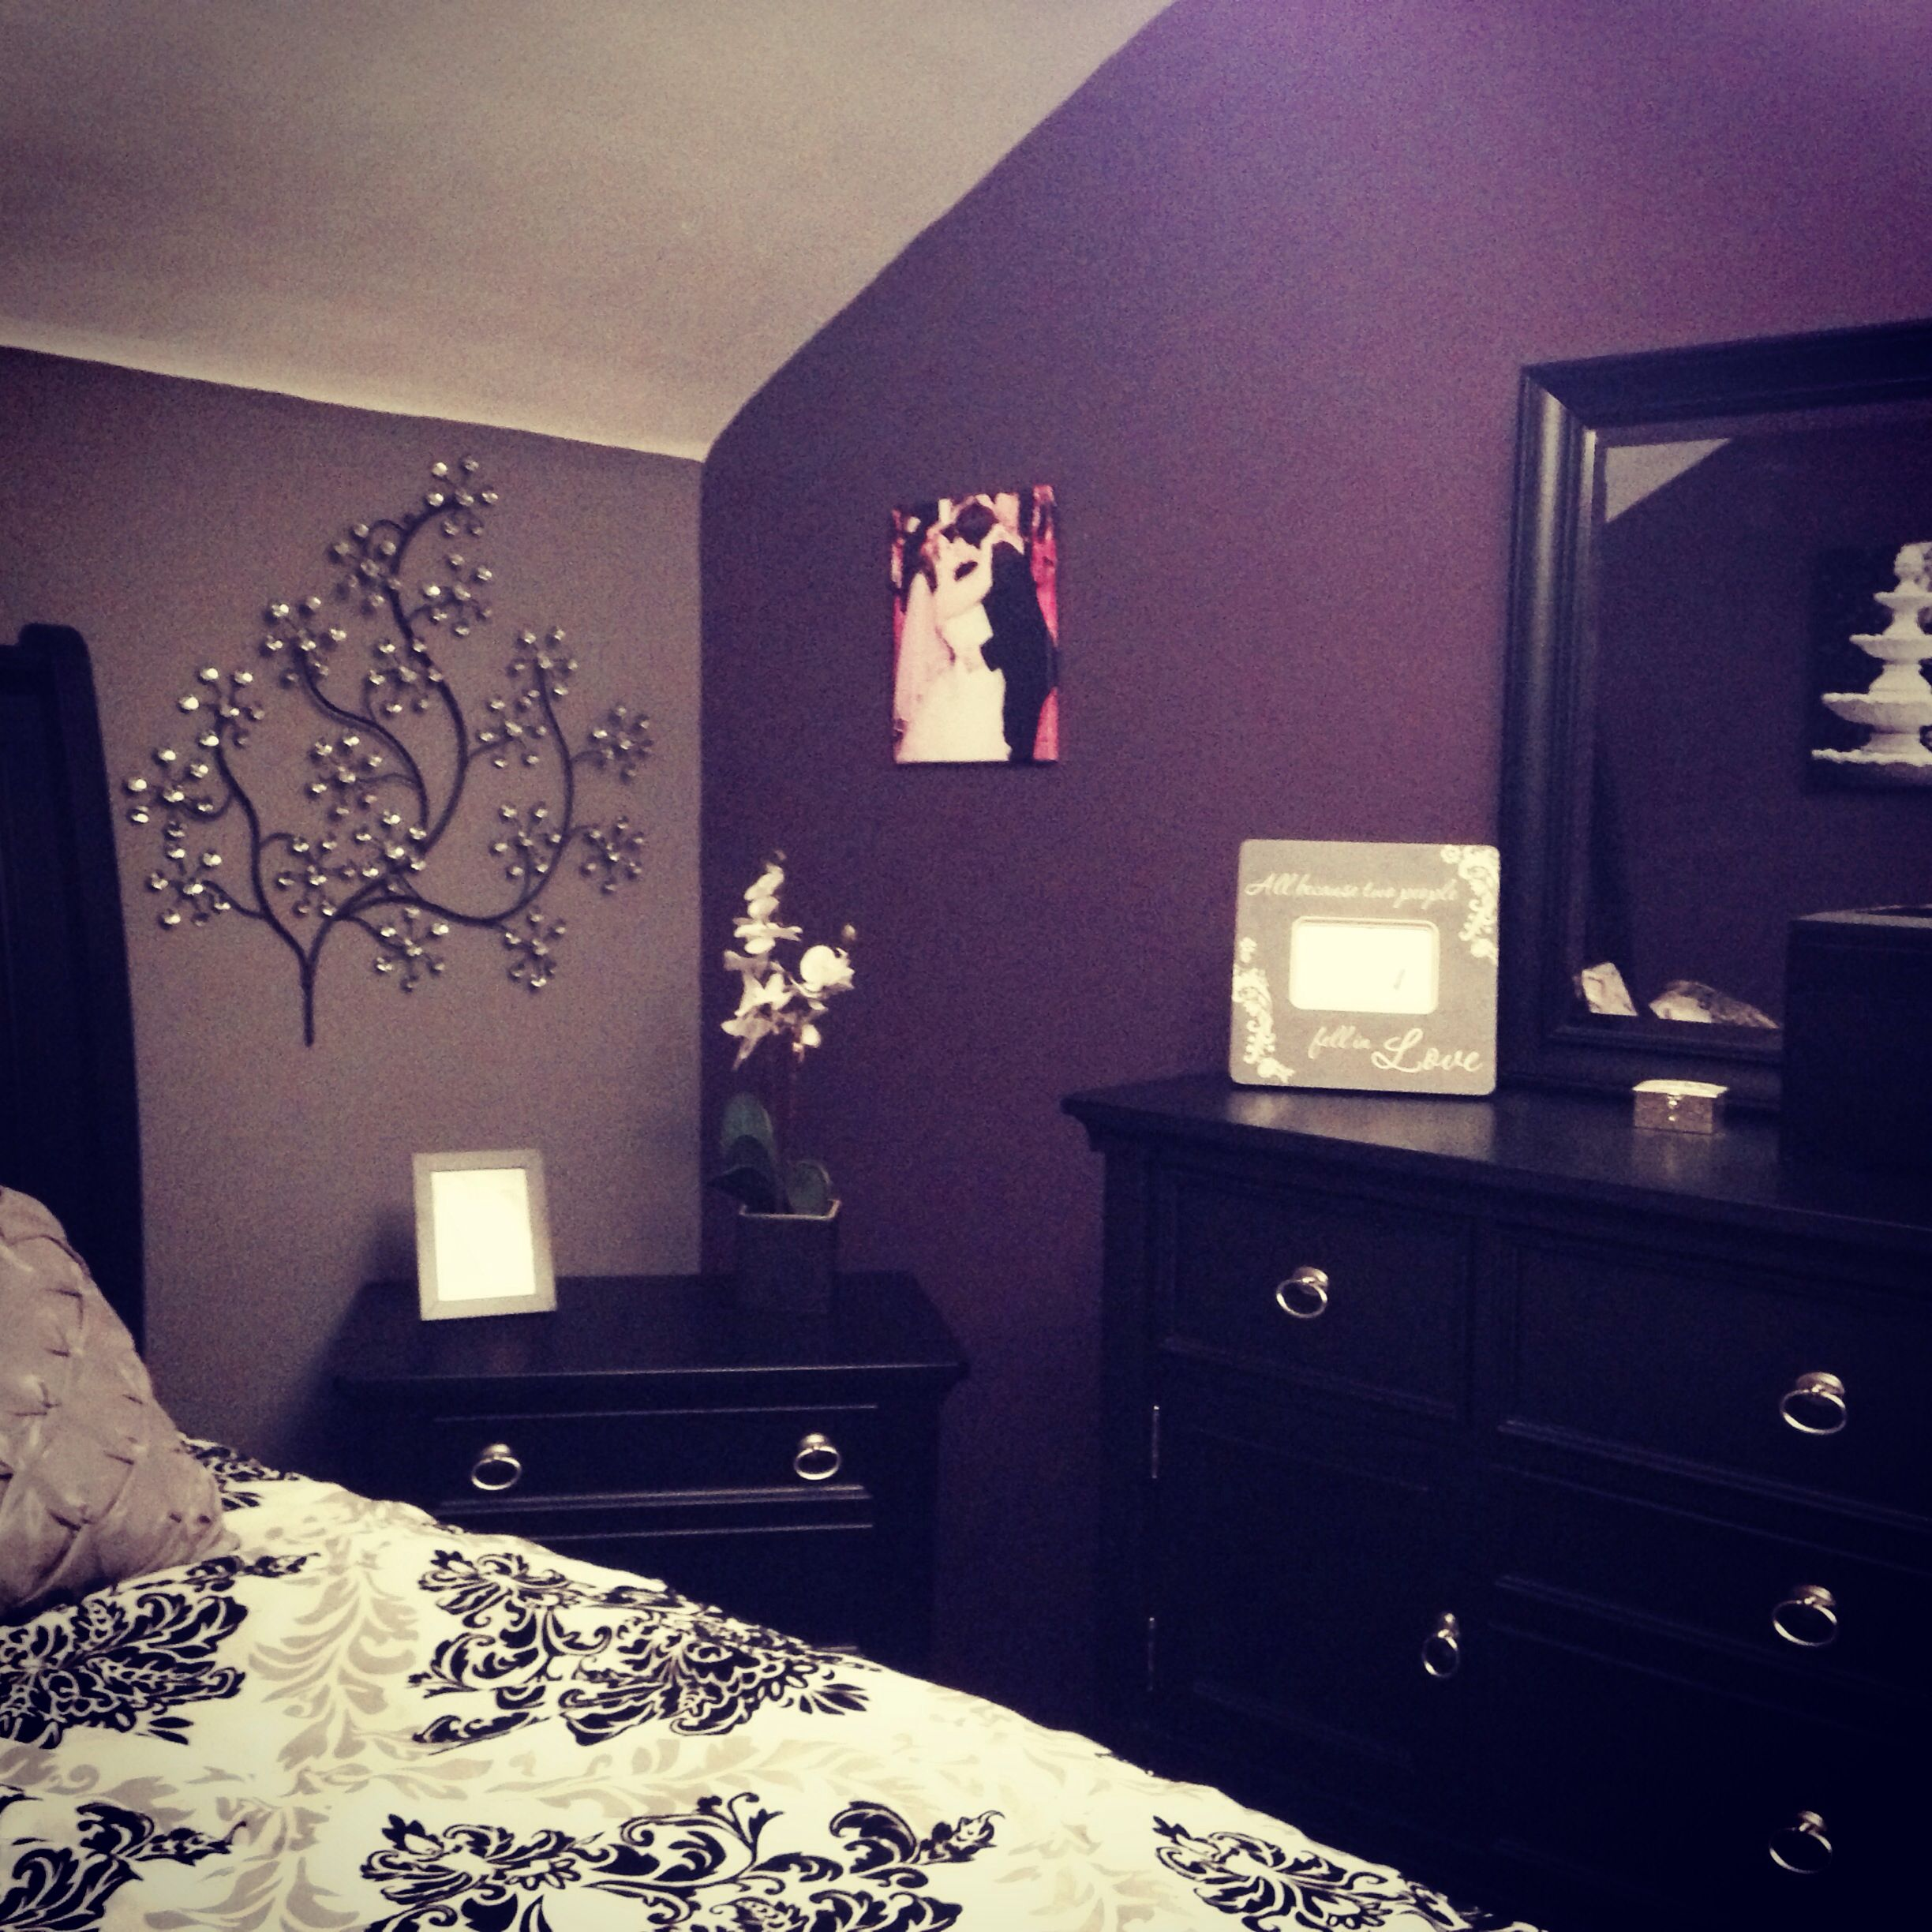 Bedroom design purple and grey - My Purple And Grey Bedroom